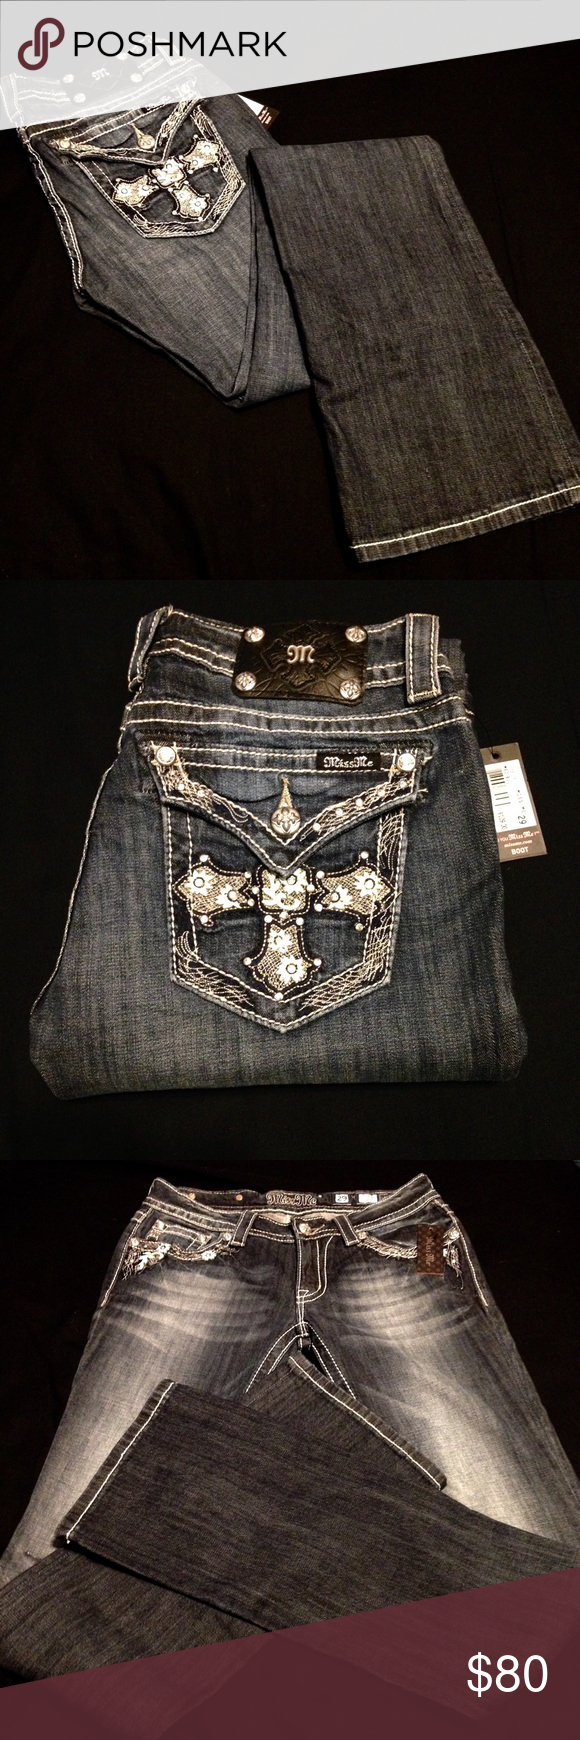 "Miss Me Bootcut Jeans NWT: Brand new with tag! Medium wash and stretchy. Size 29. Measures 15"" across, rise 7.5"", inseam 35"". Too tight for me and don't want them. No trades or lowball offers please. Reasonable offers may be accepted. Miss Me Jeans Boot Cut"